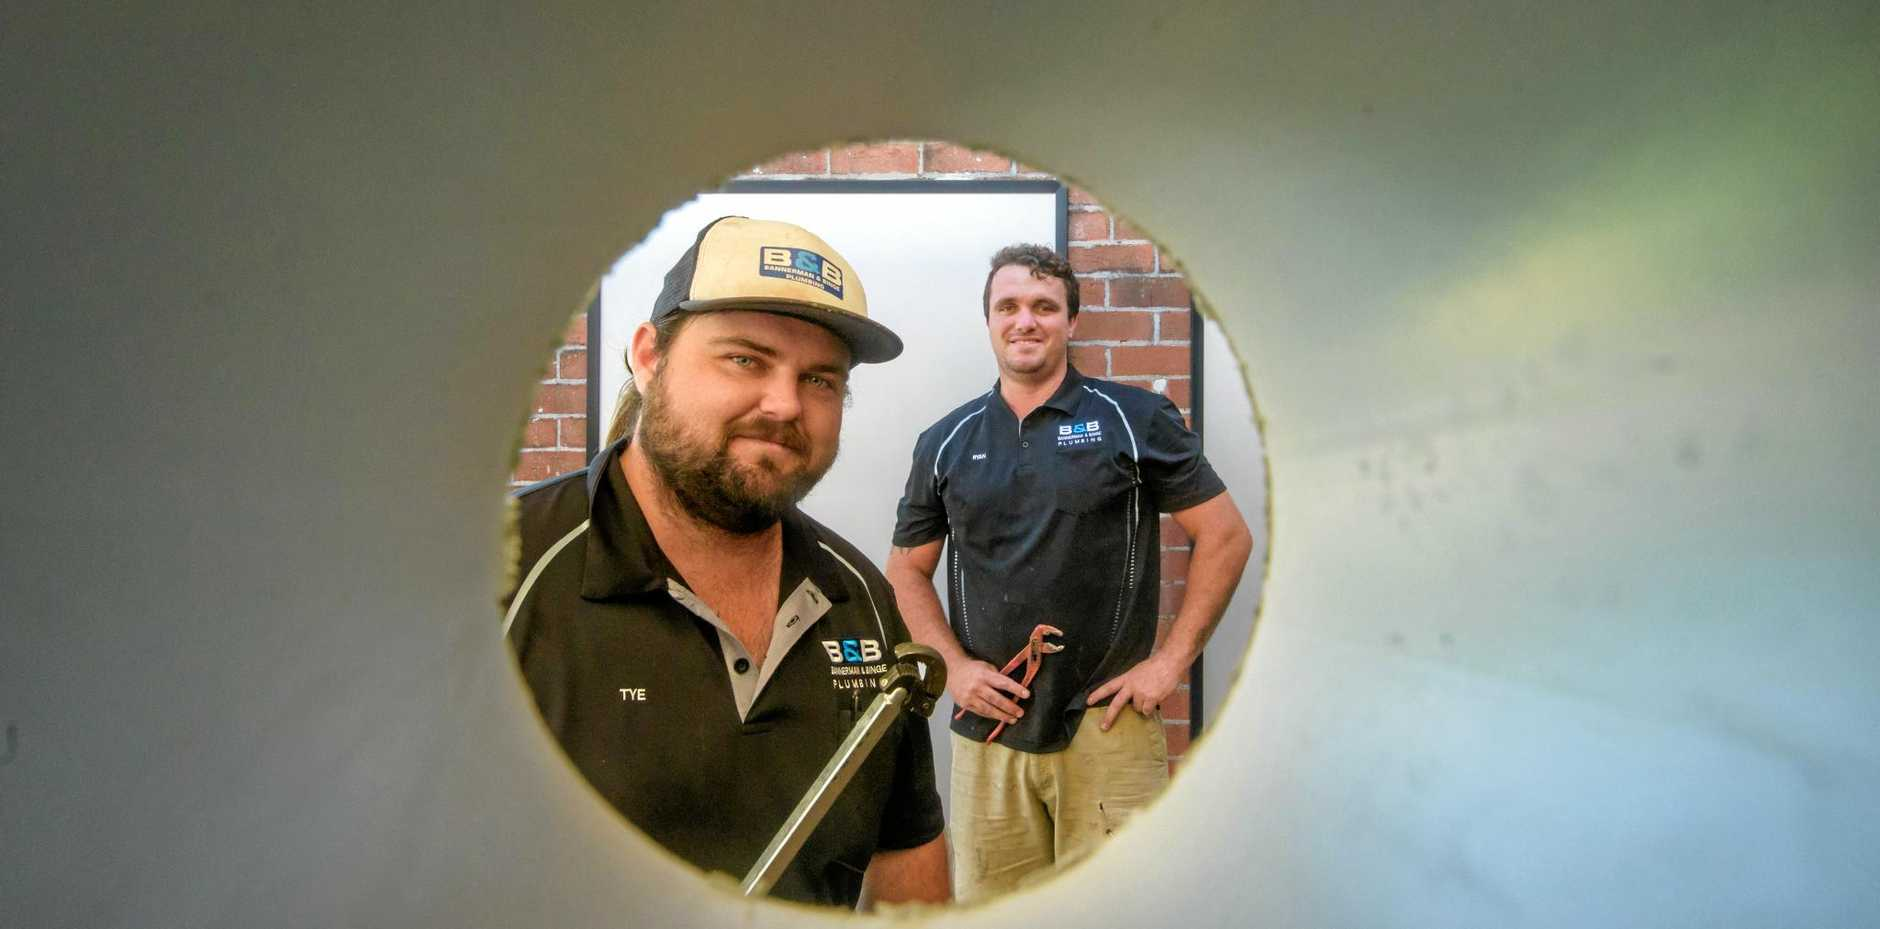 Tye Bannerman and Ryan Binge were the winners of the Daily Examiner's Facebook poll for the best plumbers in the Clarence Valley.